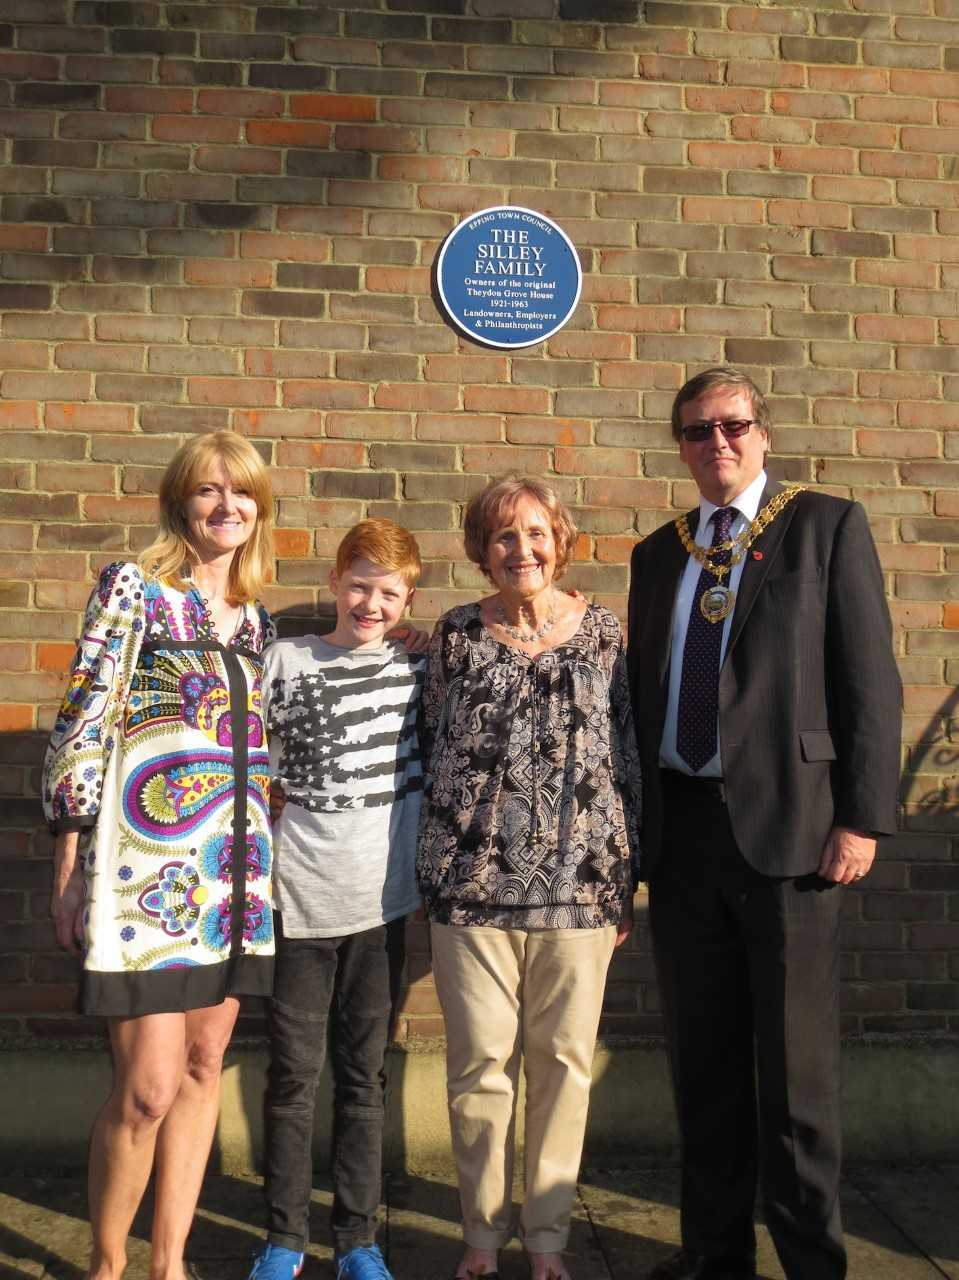 The unveiling of the blue plaque